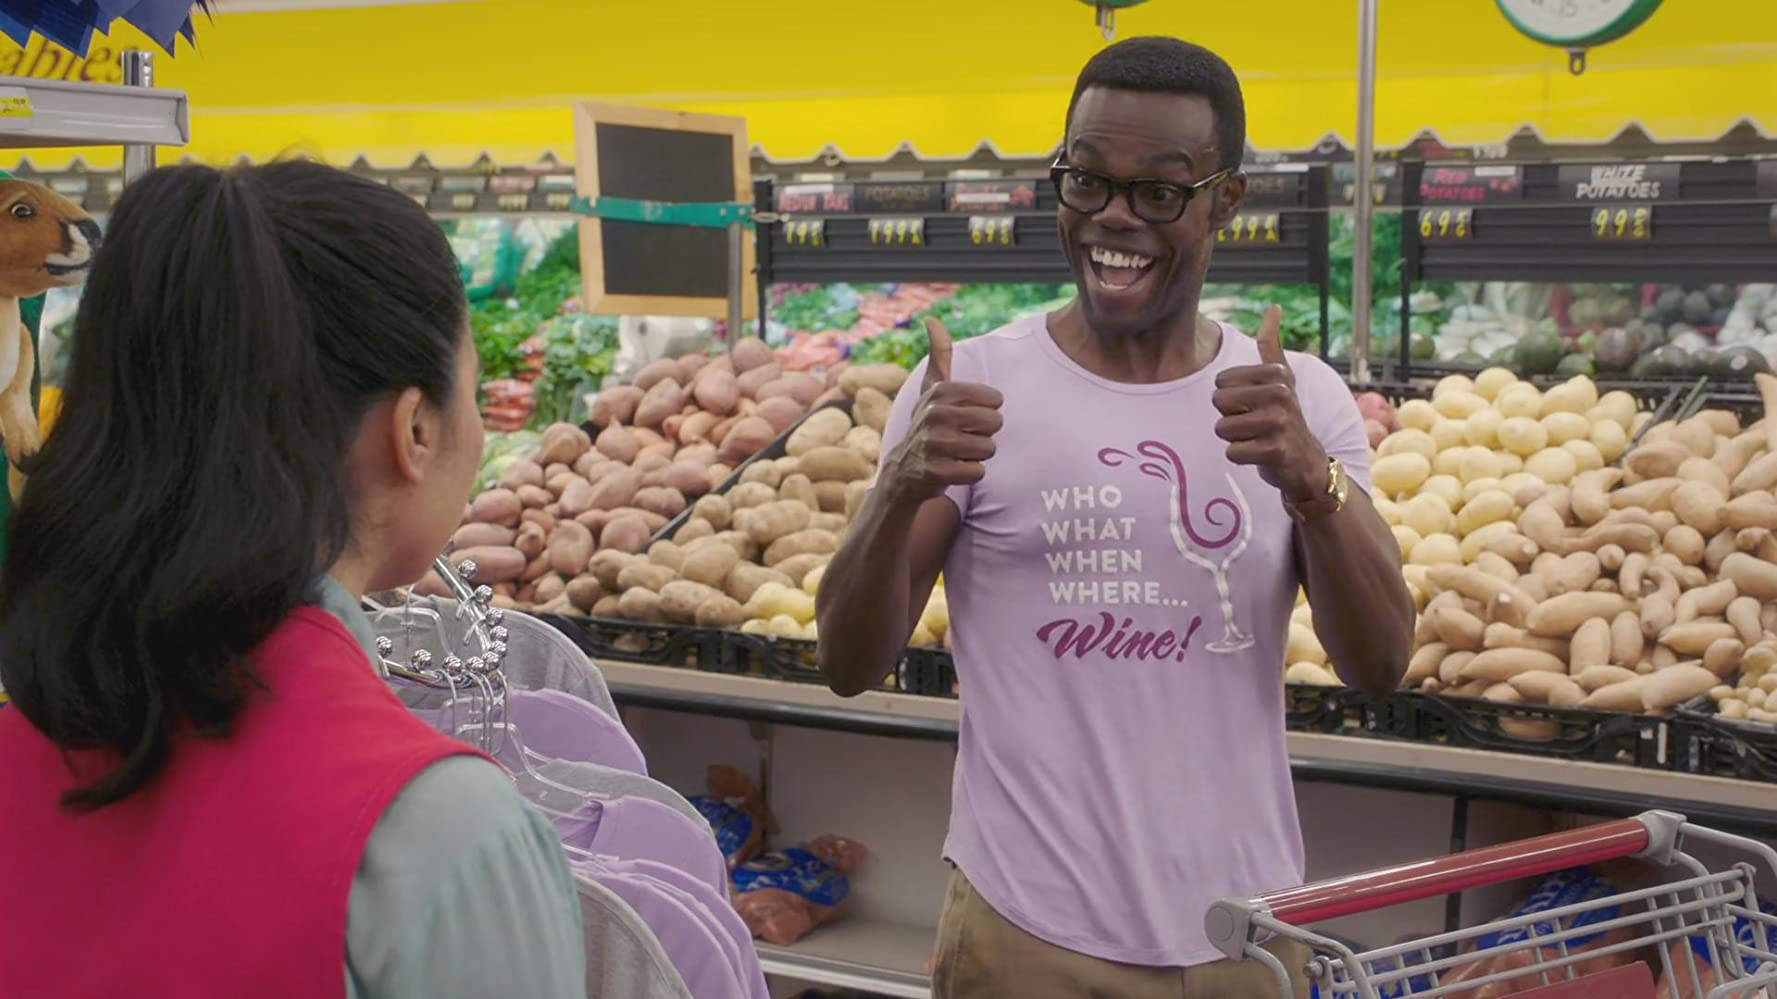 William Jackson Harper in The Good Place (2016)